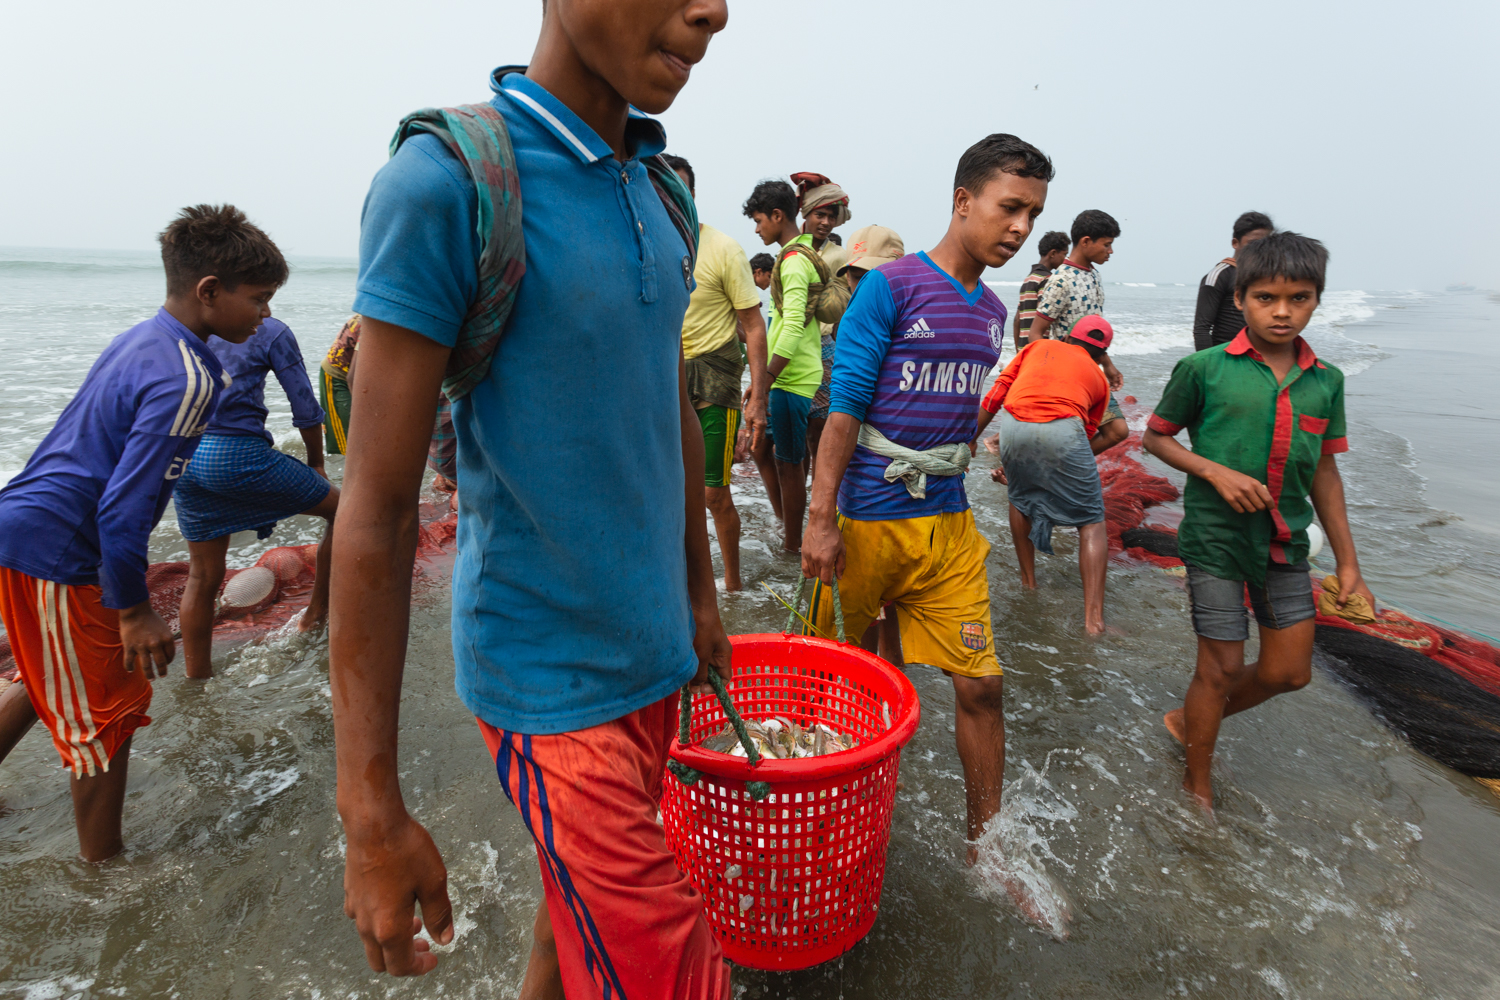 The workers of Bay of Bengal Cox's Bazar Bangladesh transporting caught fish